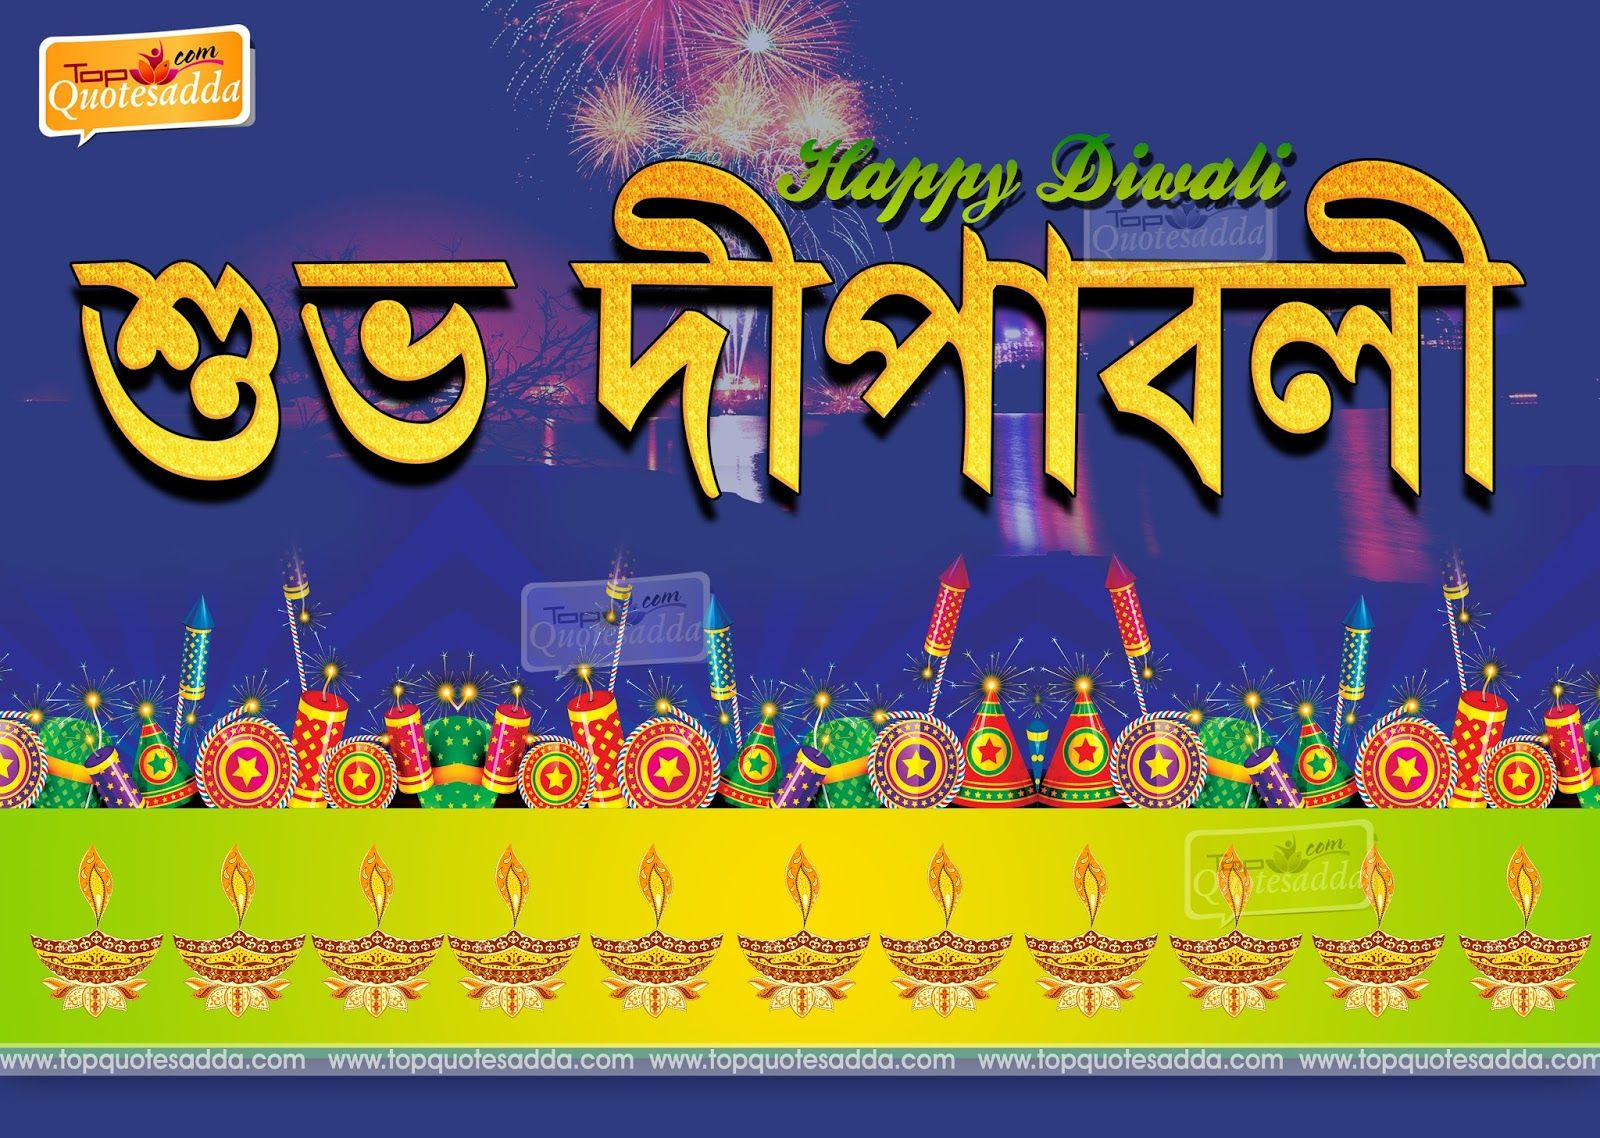 Here is a 2015 Deepavali Bengali Language Quotes and Messages online, Top Bangla Diwali Wishes and Quotations online,happy diwali bengali quotes wishes,wish you happy diwali bengali quotes,happy diwali sms quotes in bengali language,happy diwali bengali quotes in tamil font,latest diwali bengali messages for facebook,happy diwali bengali greetings and wishes hd wallpapers,happy diwali bengali hq images and picture quotes,happy diwali bengali e cards for facebook,deepavali bengali…